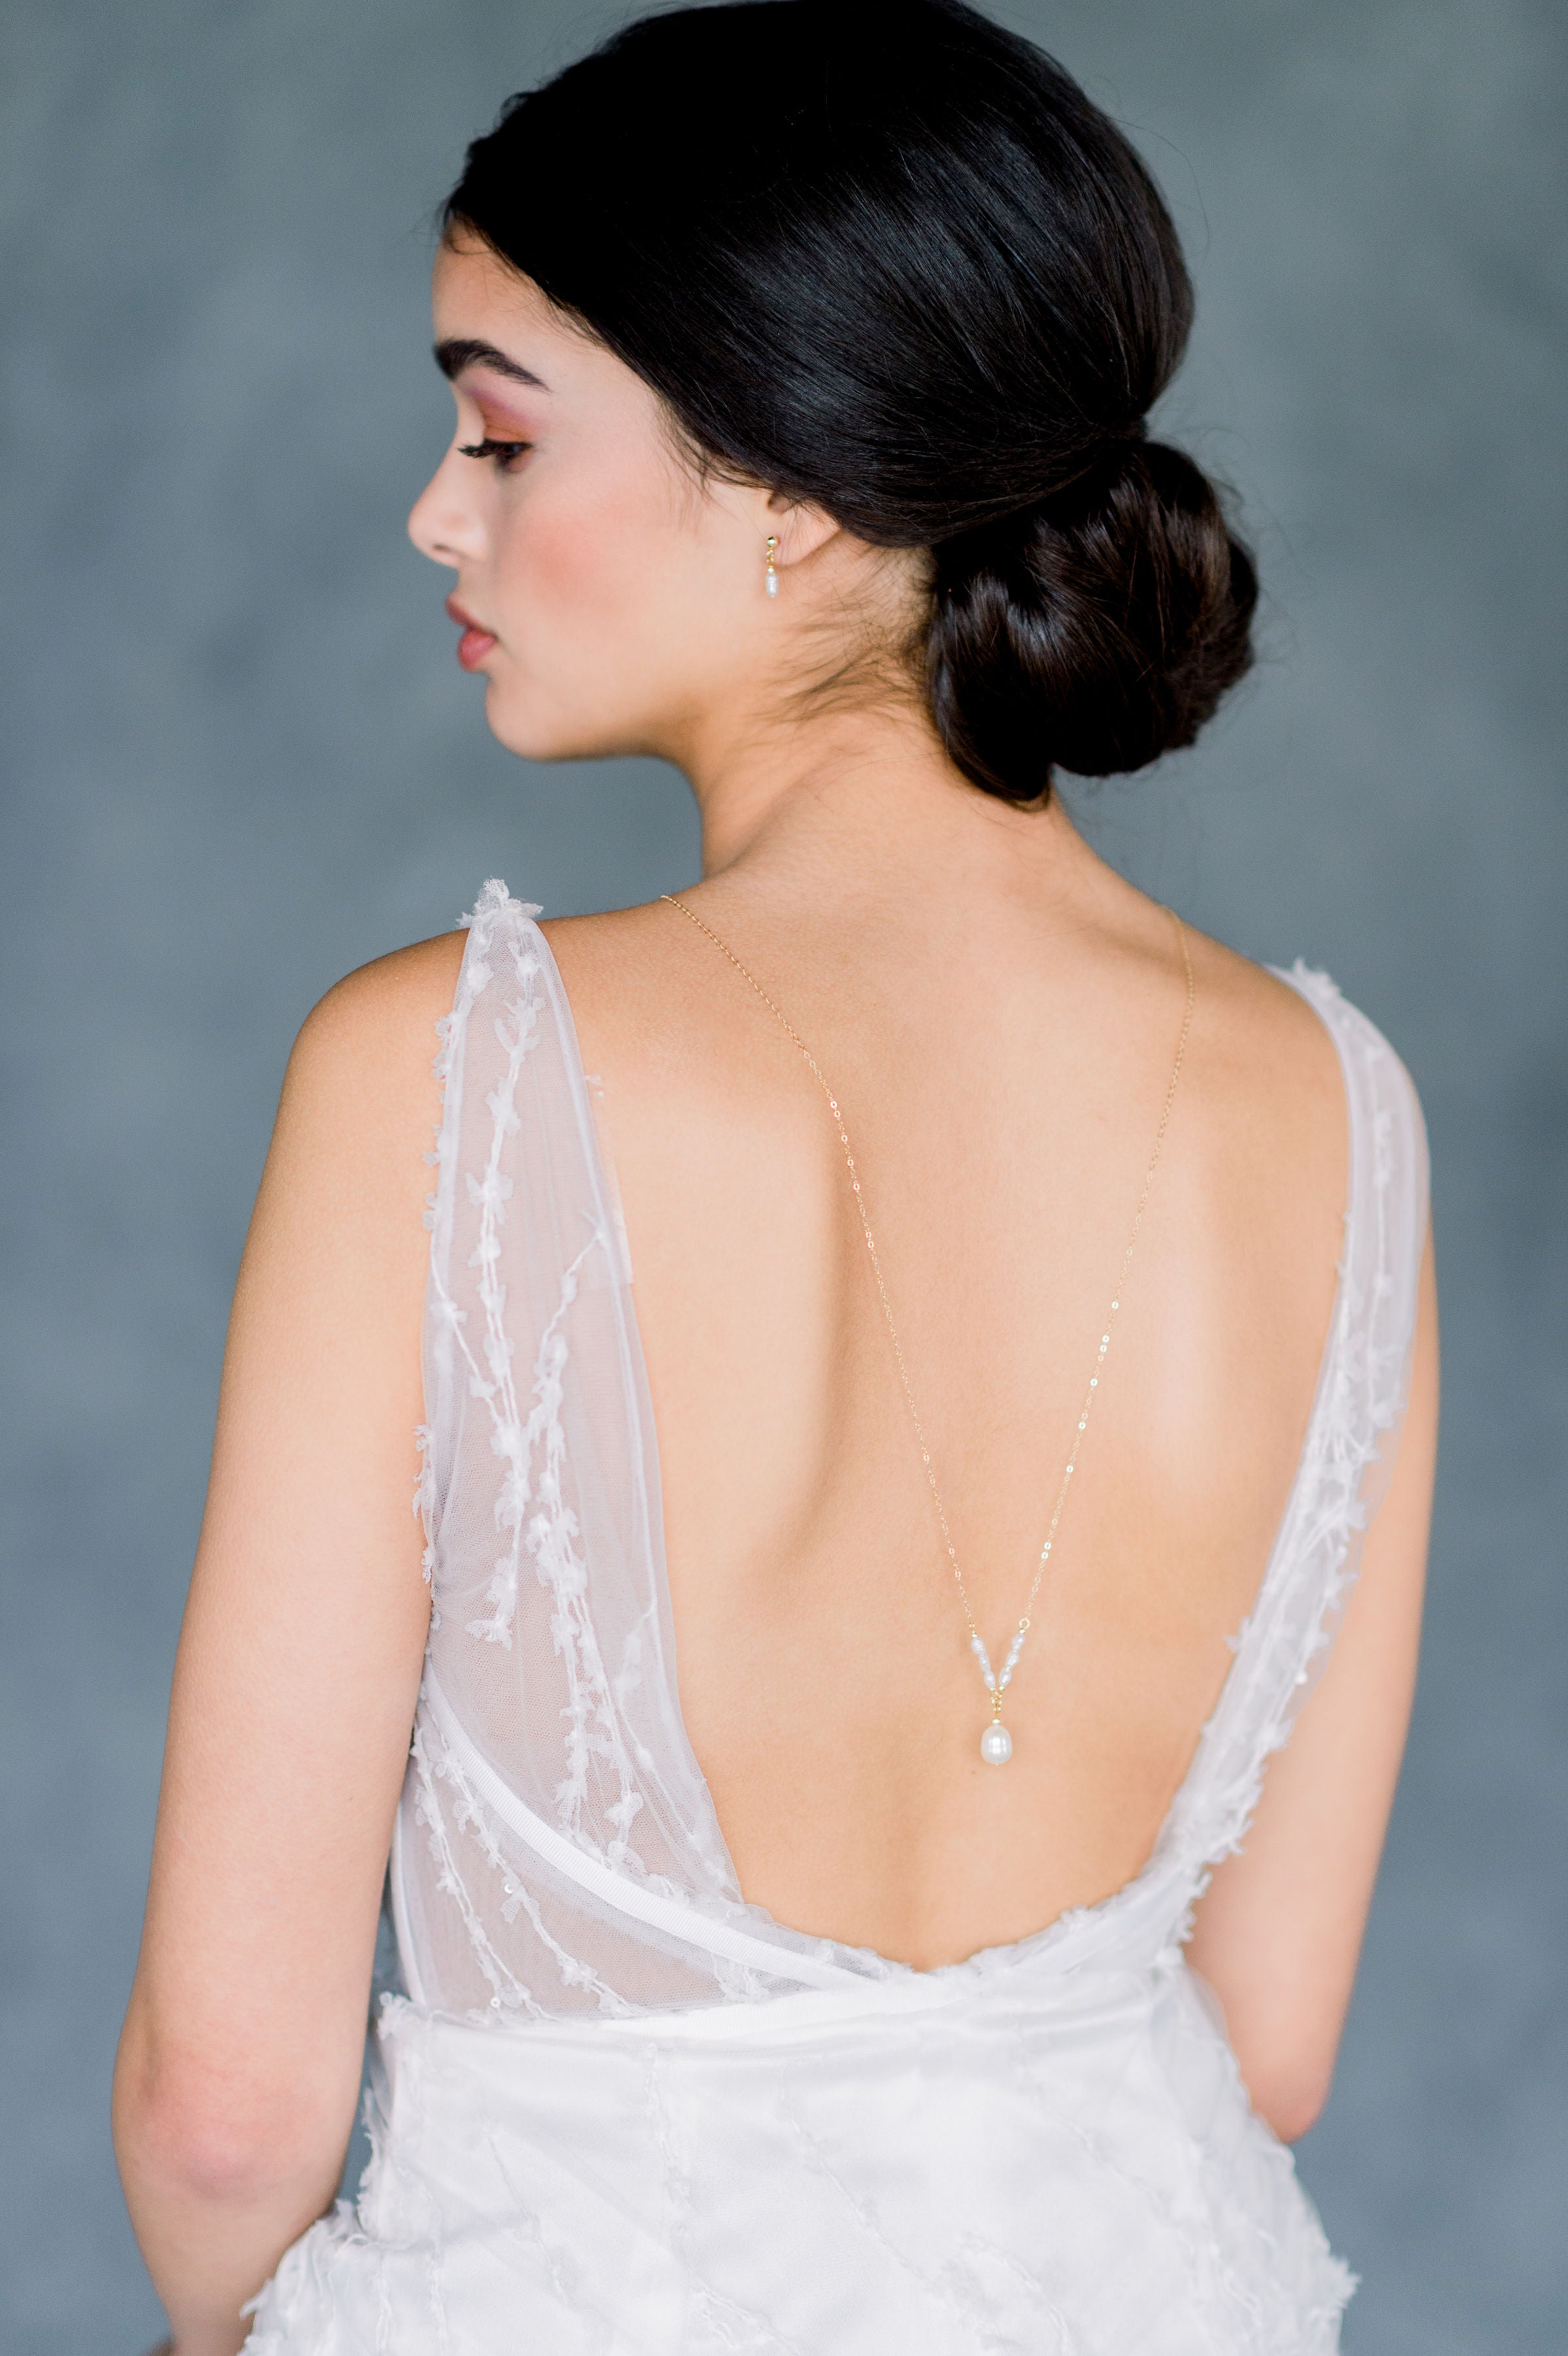 Rose Gold Deep V Open Back Wedding Gown Back Necklace Jewelry with Vintage Freshwater Pearl Drop - Made in Toronto Ontario Canada - Blair Nadeau Bridal - Whitney Heard Photography